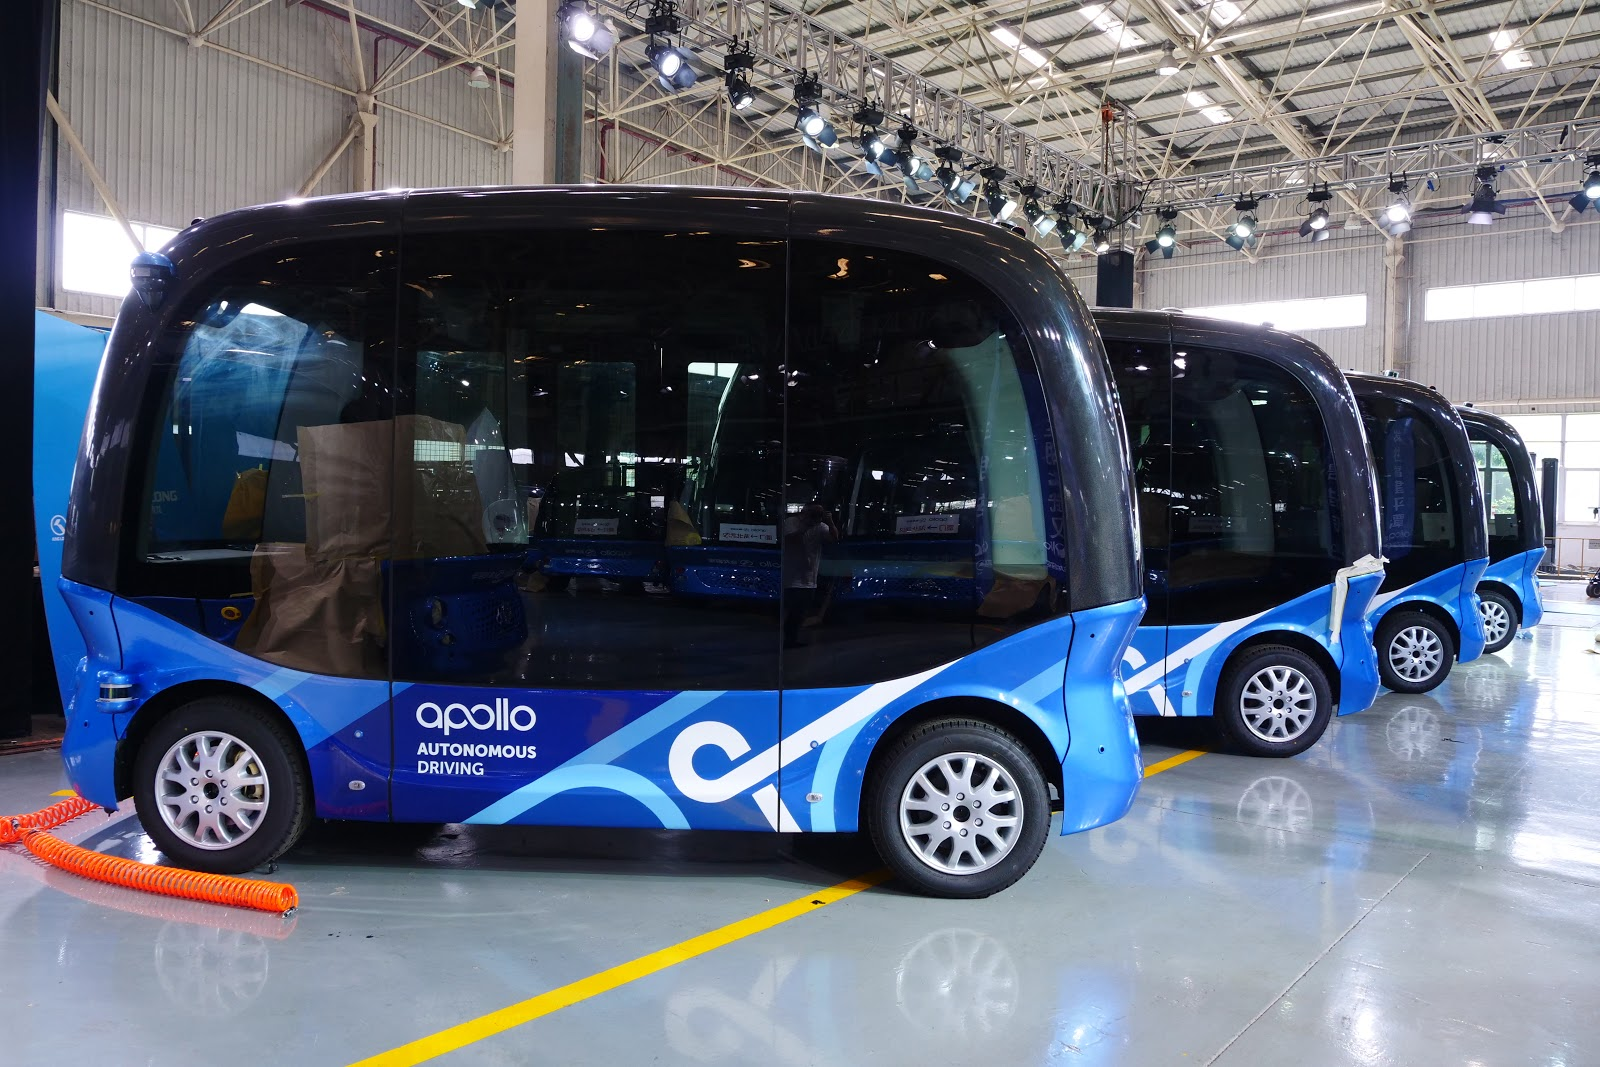 China's Internet giant Baidu rolls out 14 seater self-driving buses